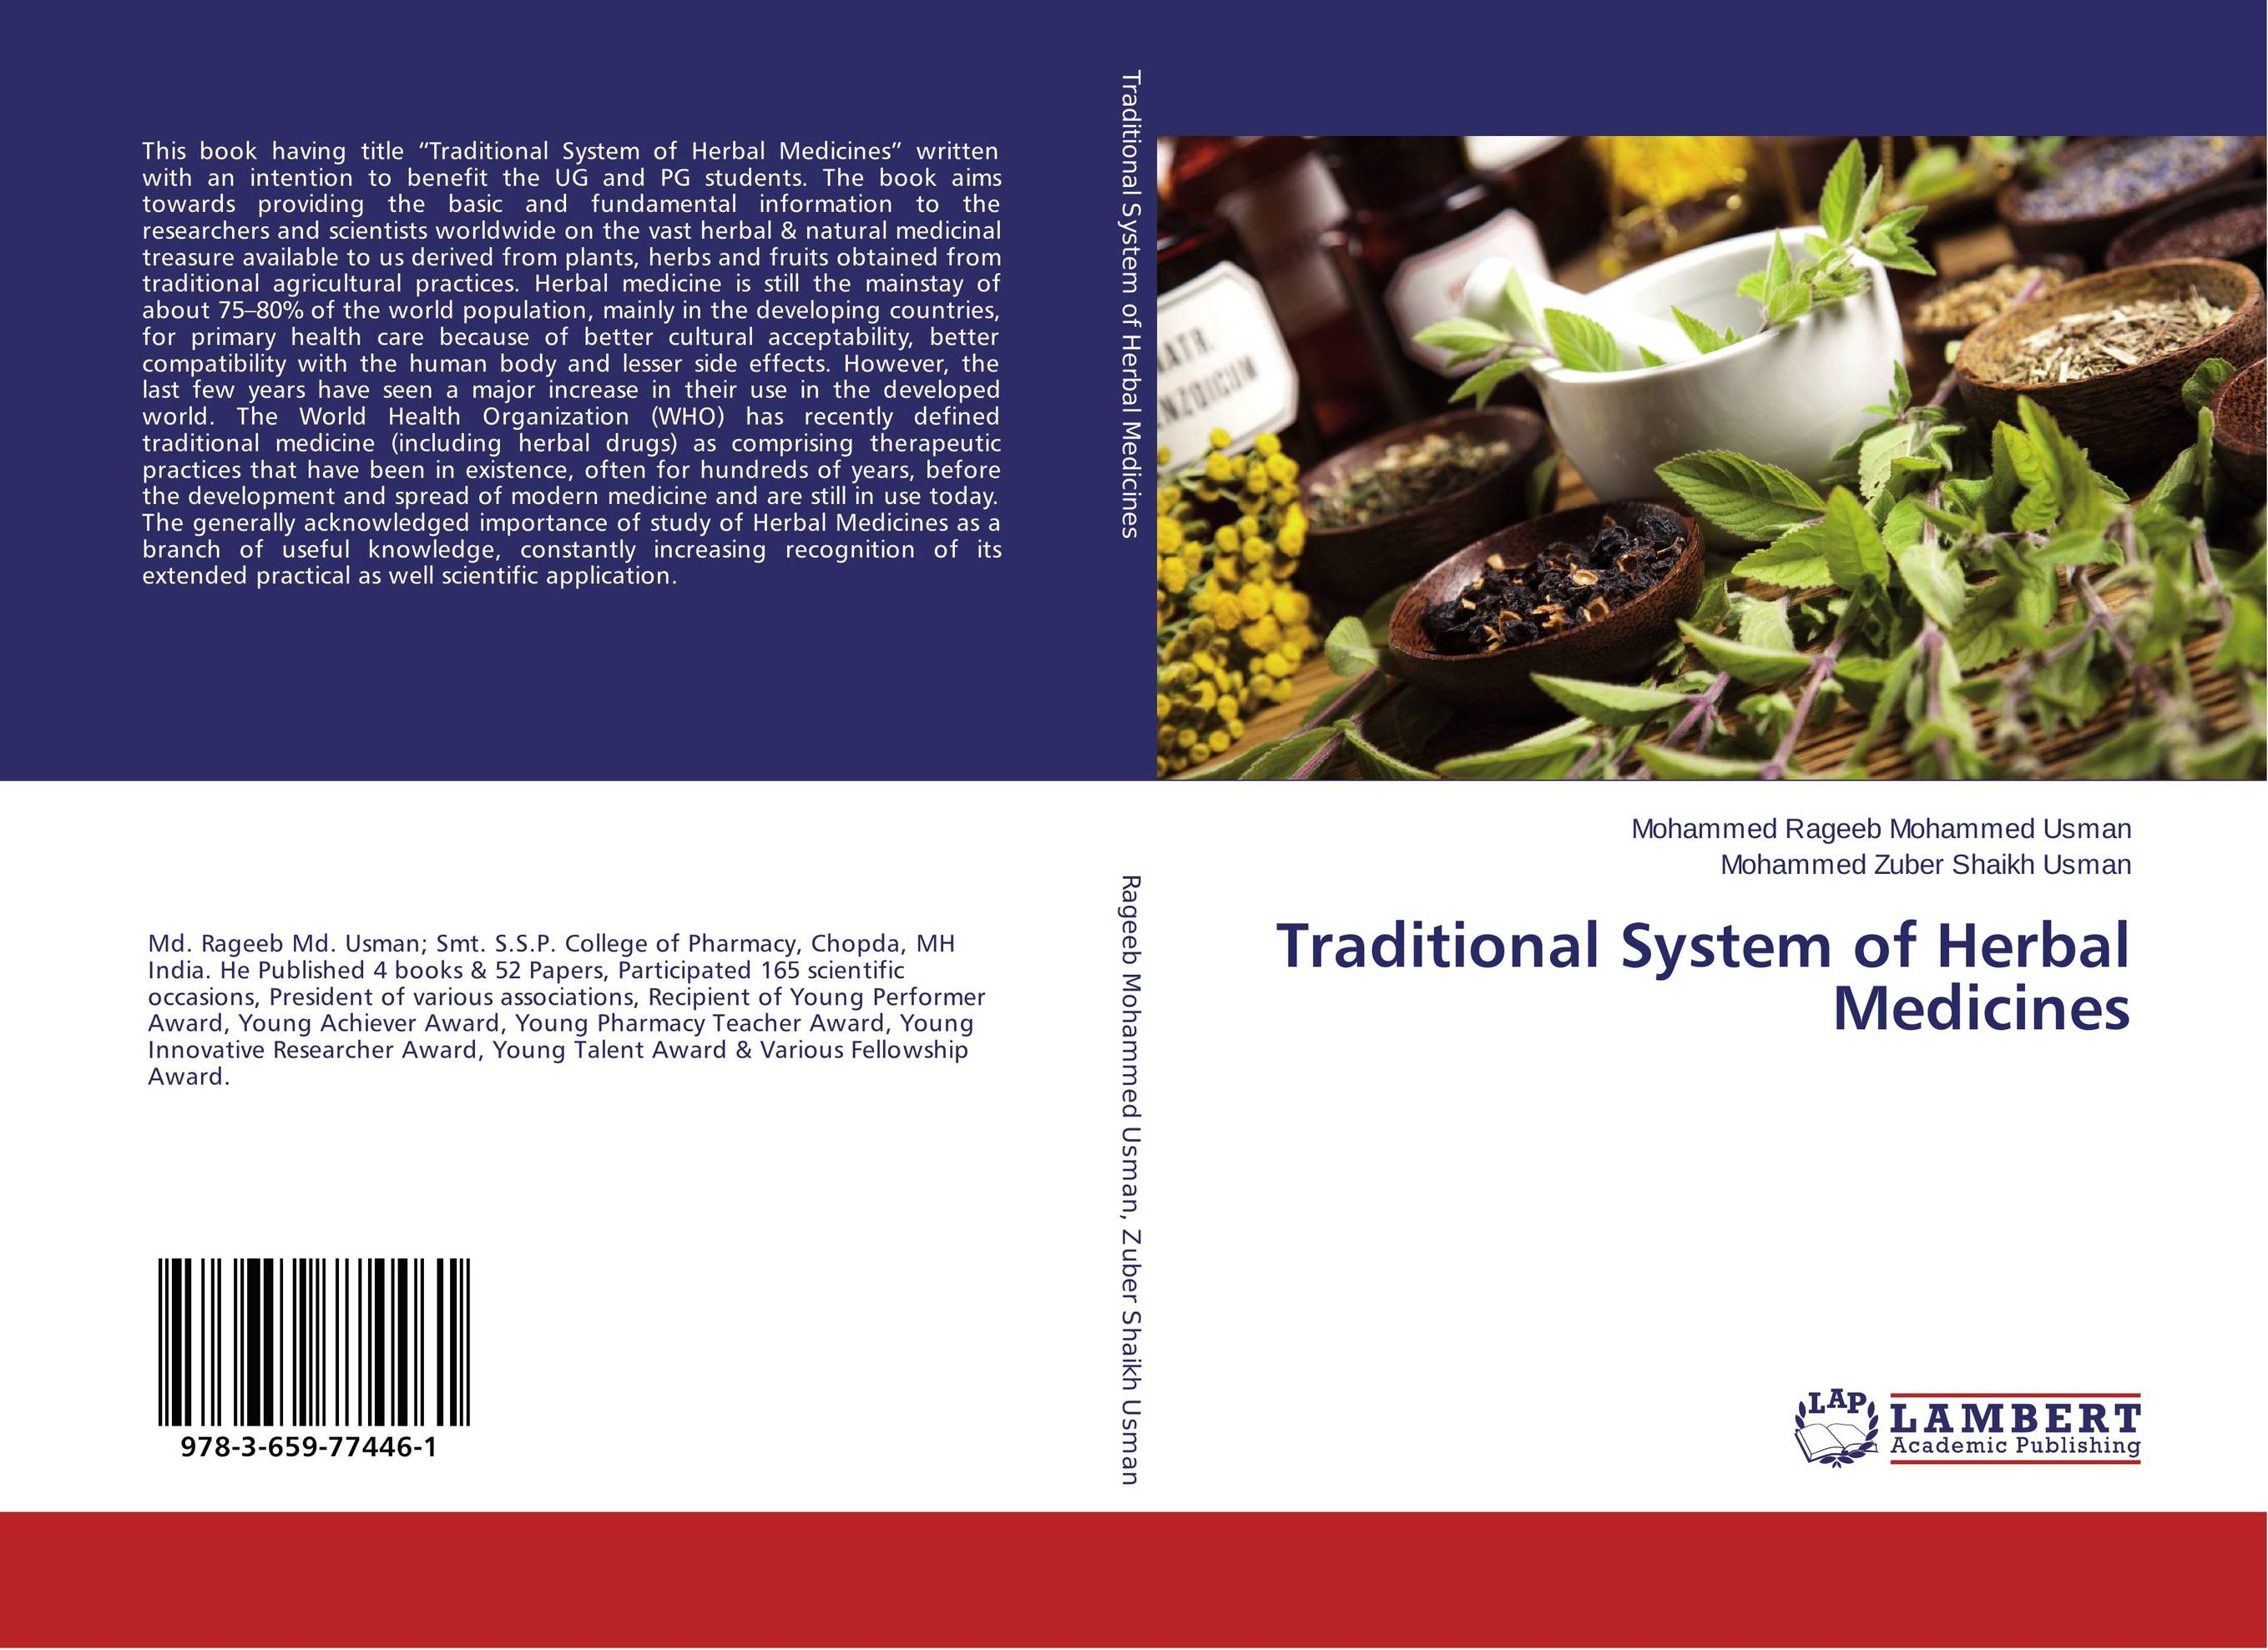 Traditional System of Herbal Medicines therapeutic practices in yoruba traditional religions